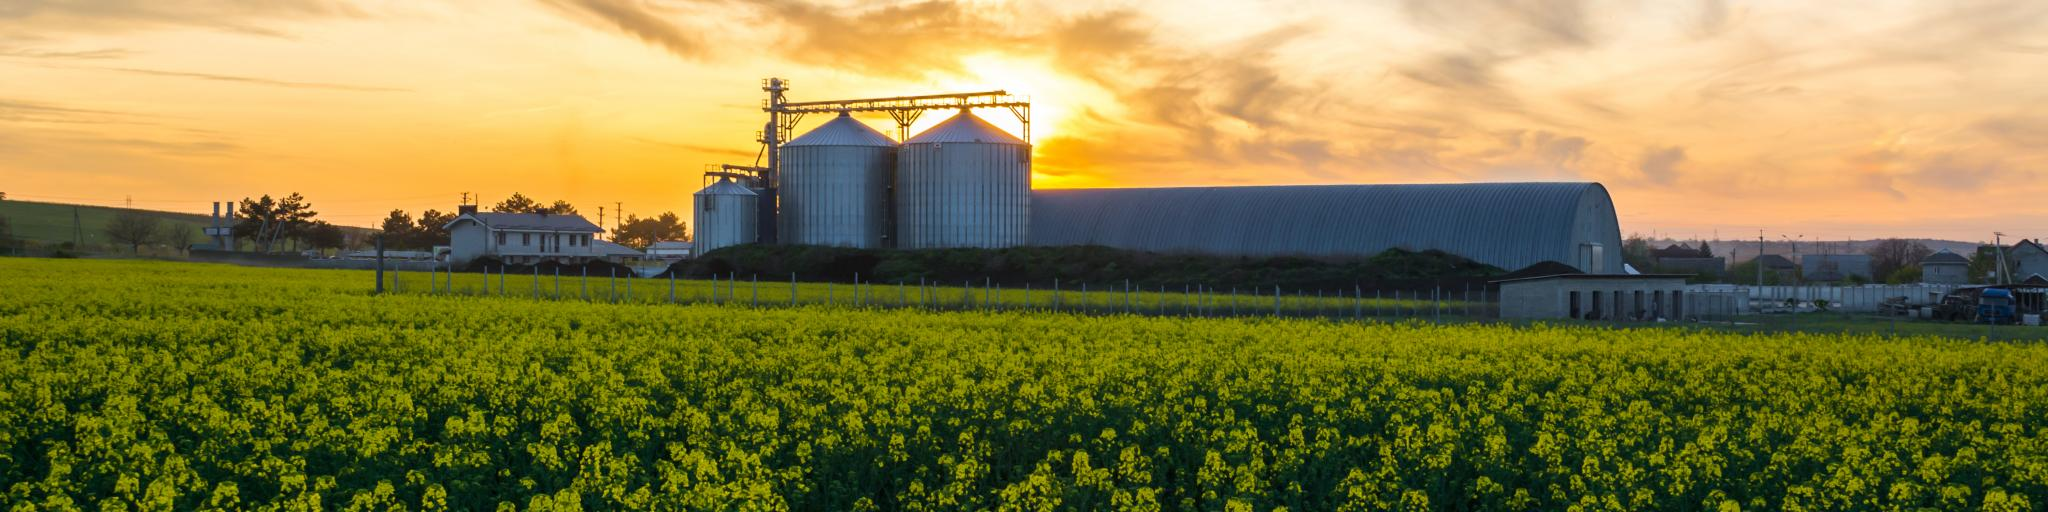 Yellow wildflowers and a couple of farm silos are illuminated in the sunset